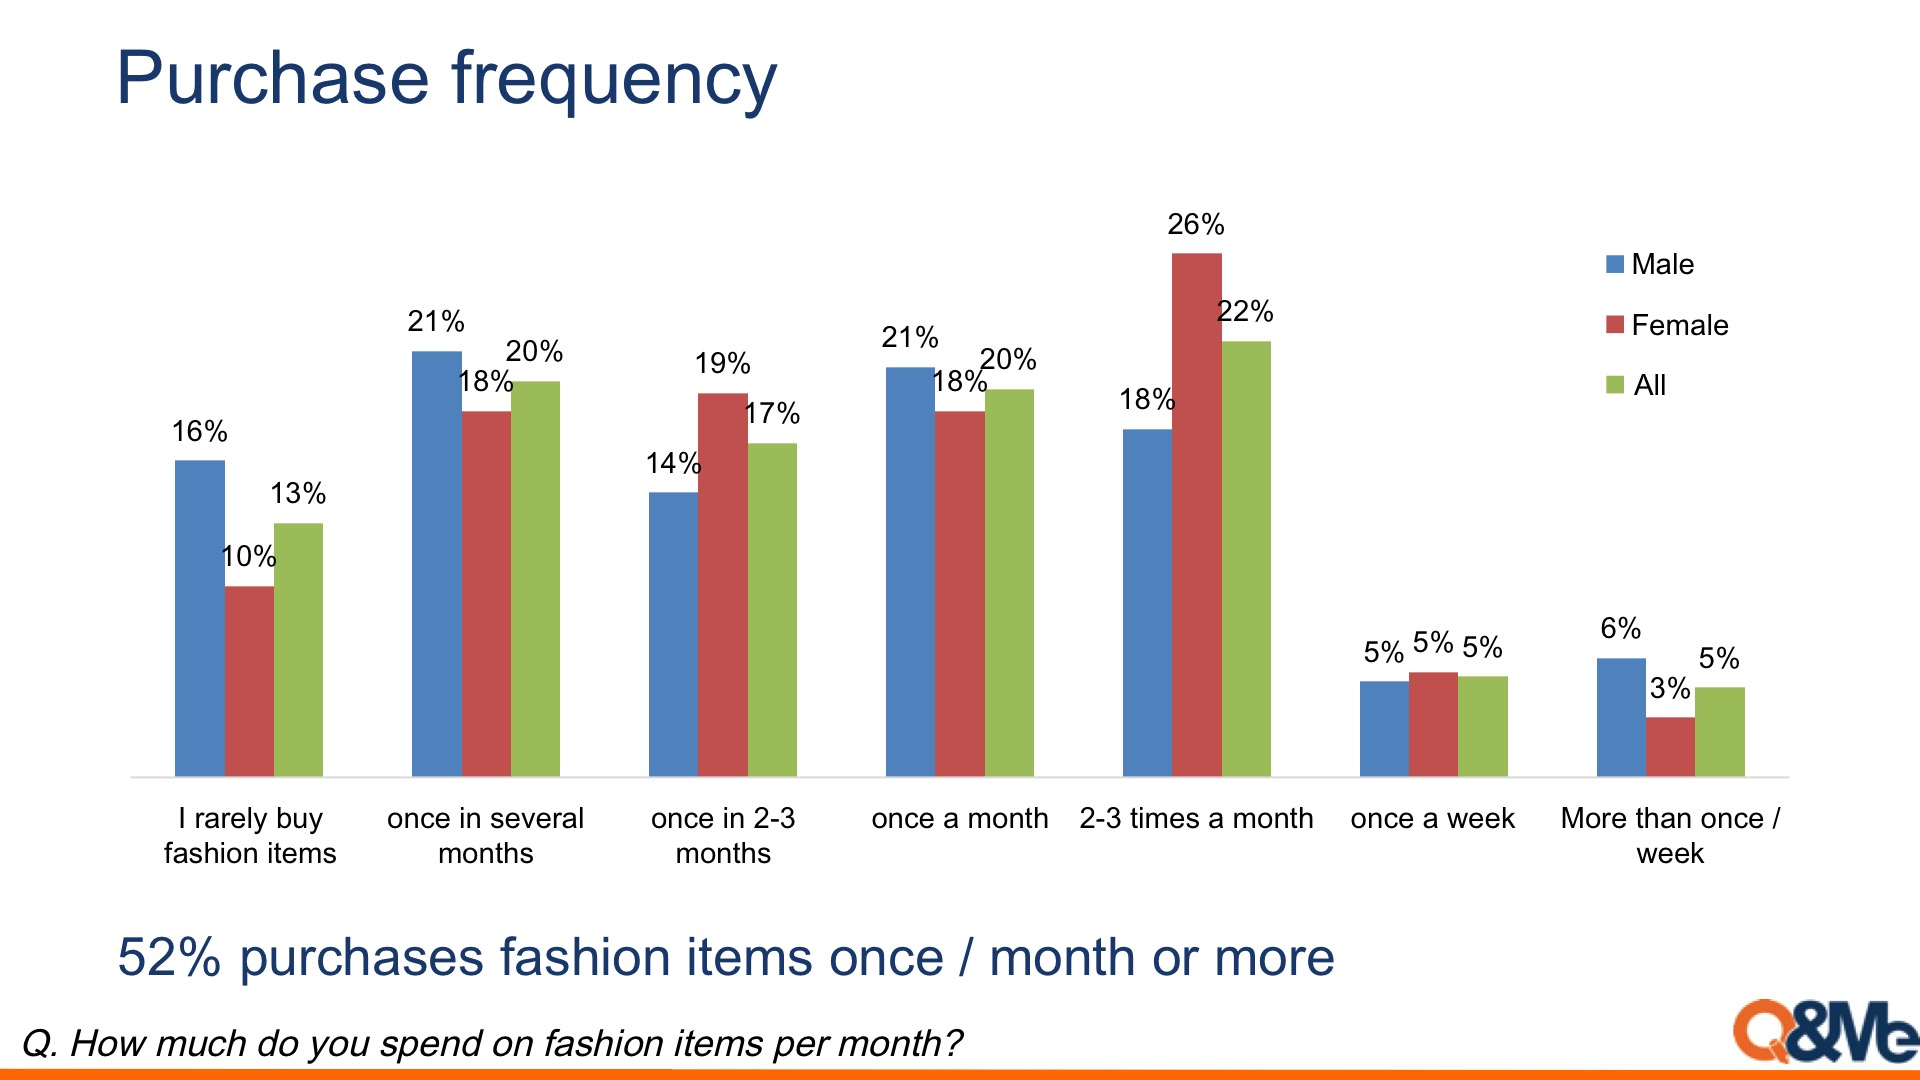 research on fashion trends Trend forecasting is a complicated but useful way to look at past sales or market growth, determine possible trends from that data and use the information to extrapolate what could happen in the future marketing experts typically utilize trend forecasting to help determine potential future sales.